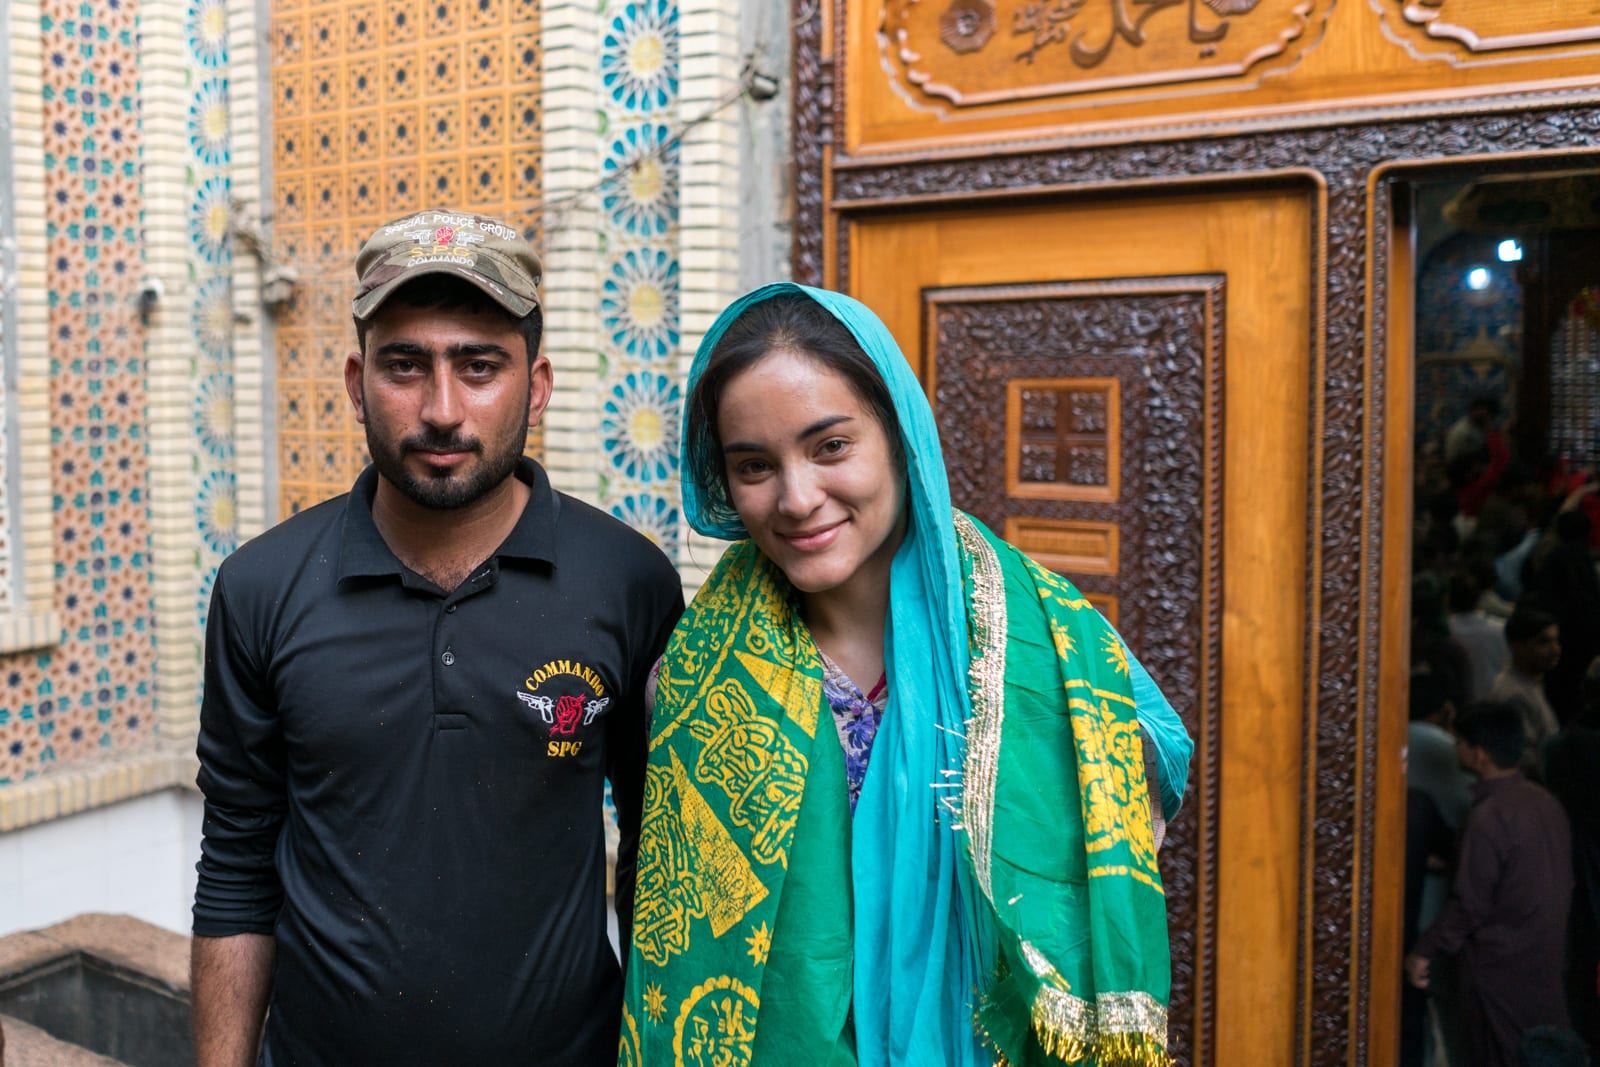 Sindh travel guide - With security guard at urs of Lal Shahbaz Qalandar in Sehwan Sharif, Pakistan - Lost With Purpose travel blog